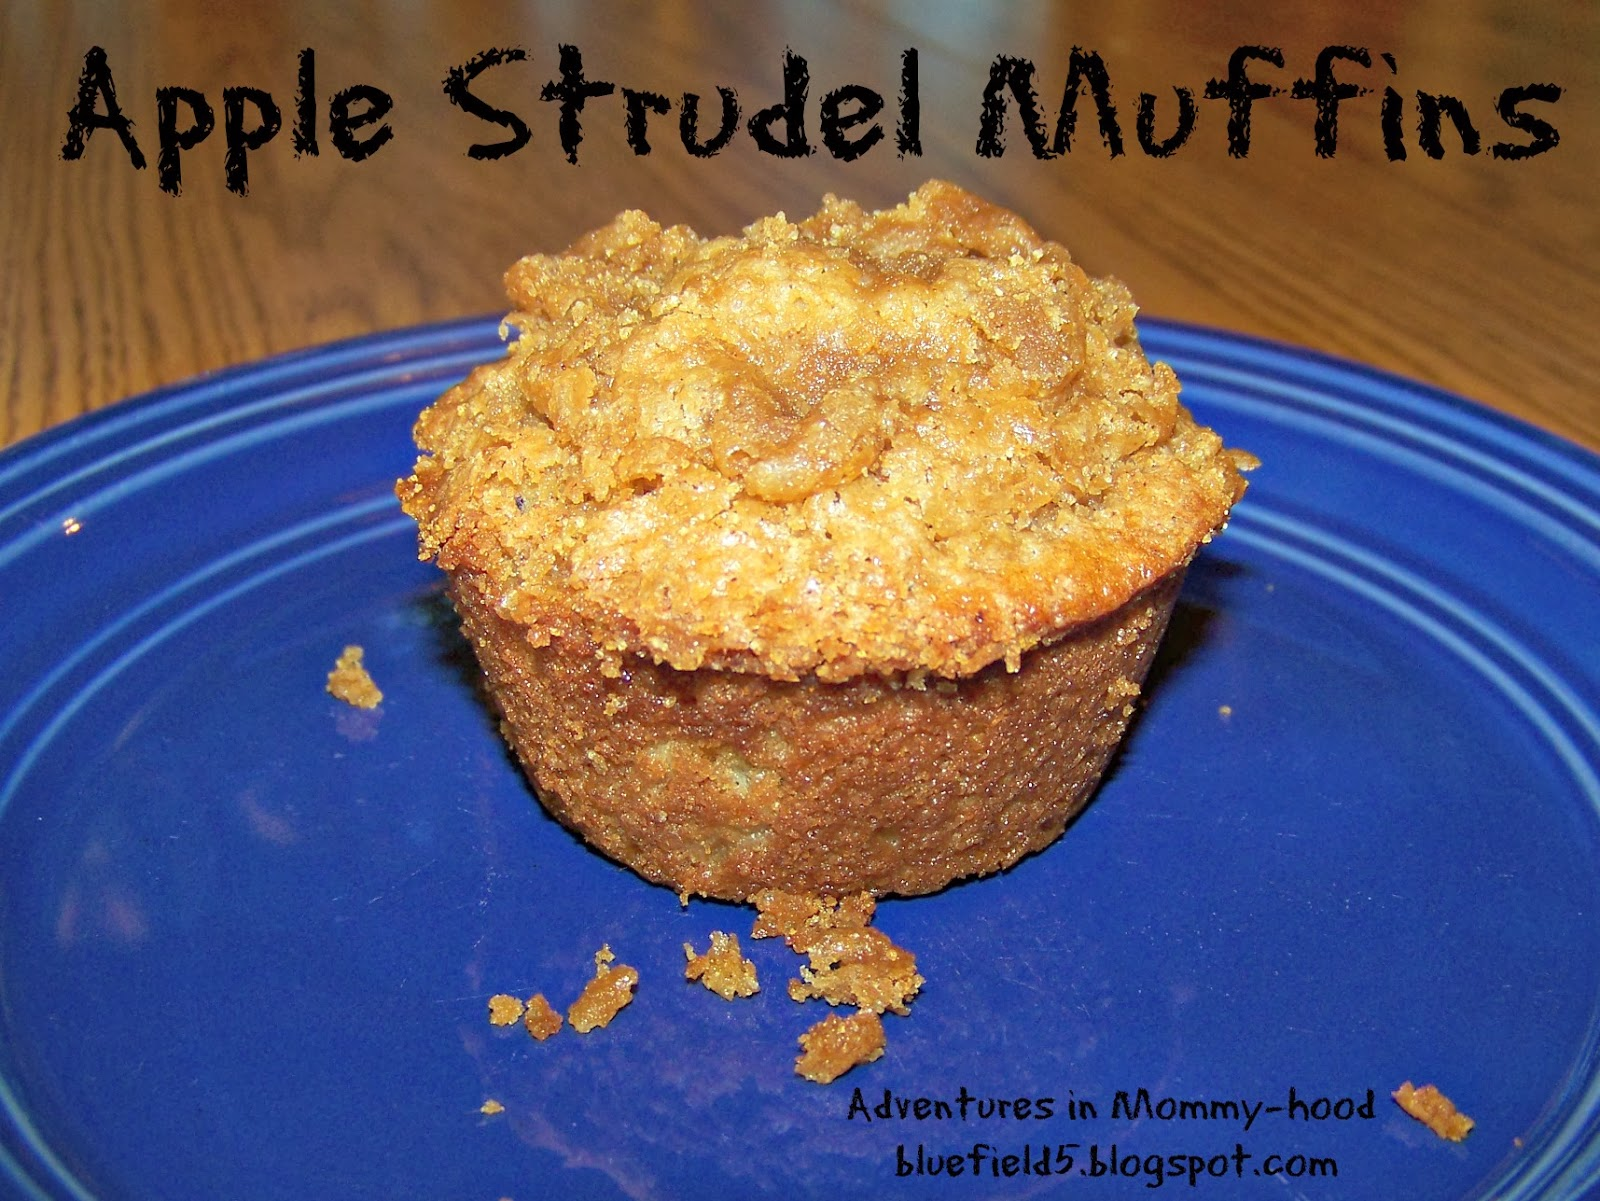 Adventures in Mommy-hood: Apple Strudel Muffins